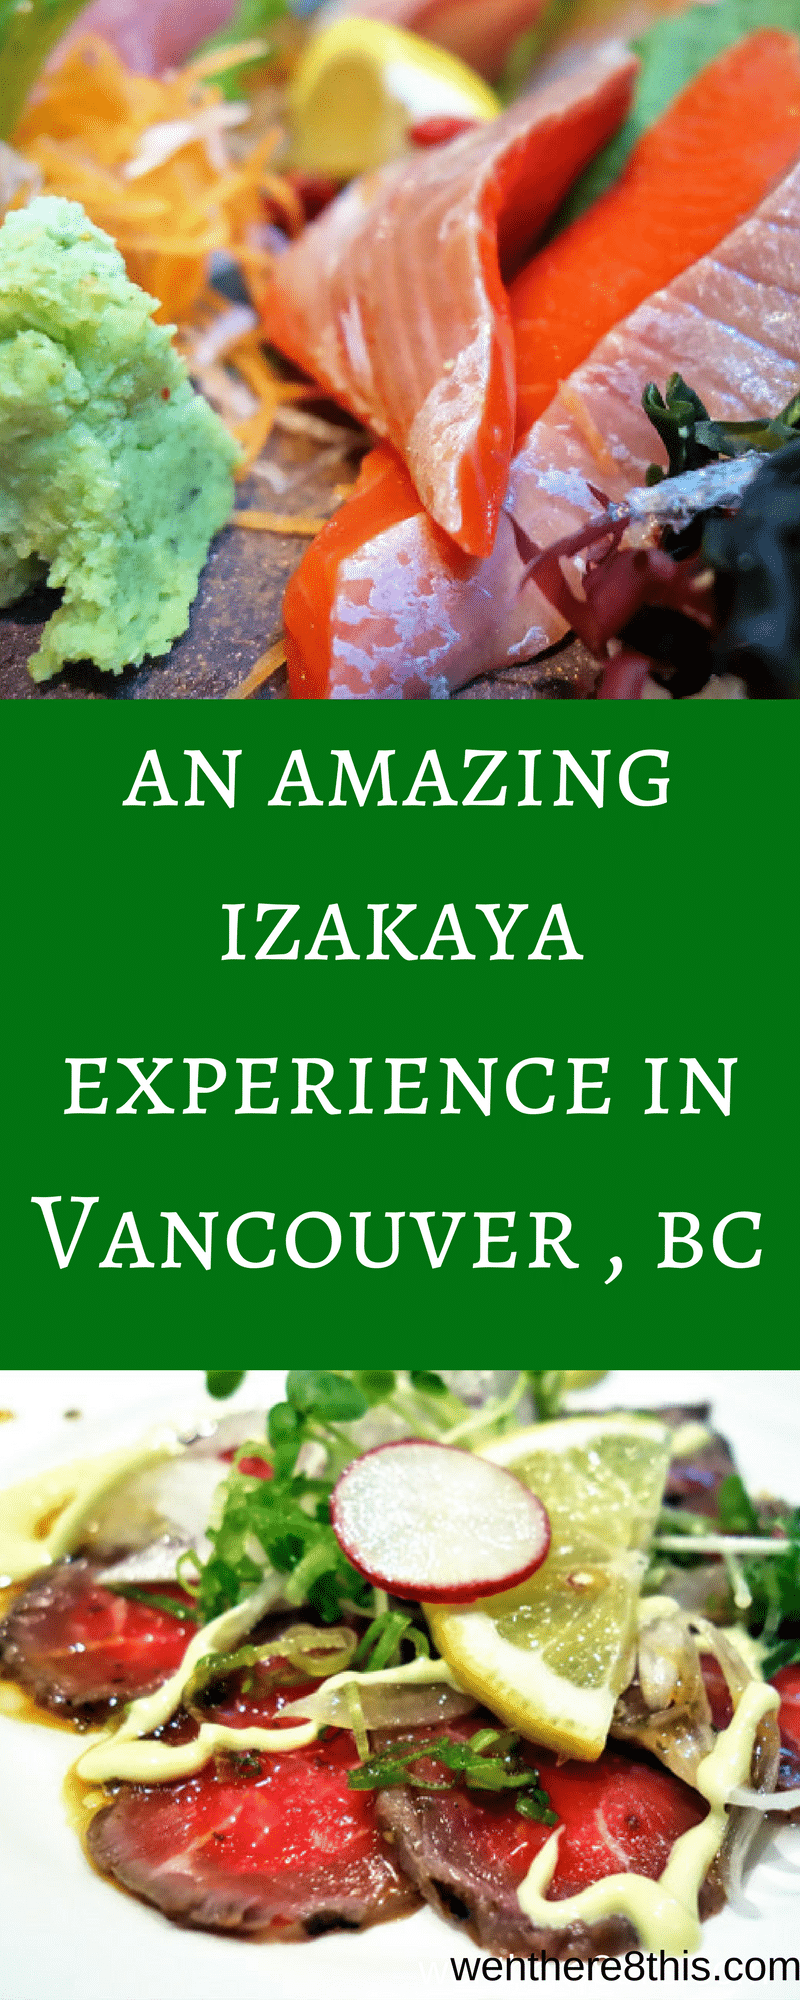 Check out what kind of great food we ate at a couple of the best izakayas in Vancouver!  Japanese food, restaurants, sushi, sashimi, fresh fish, izakaya food, tapas, Japanese restaurant, Vancouver, best restaurant in Vancouver.